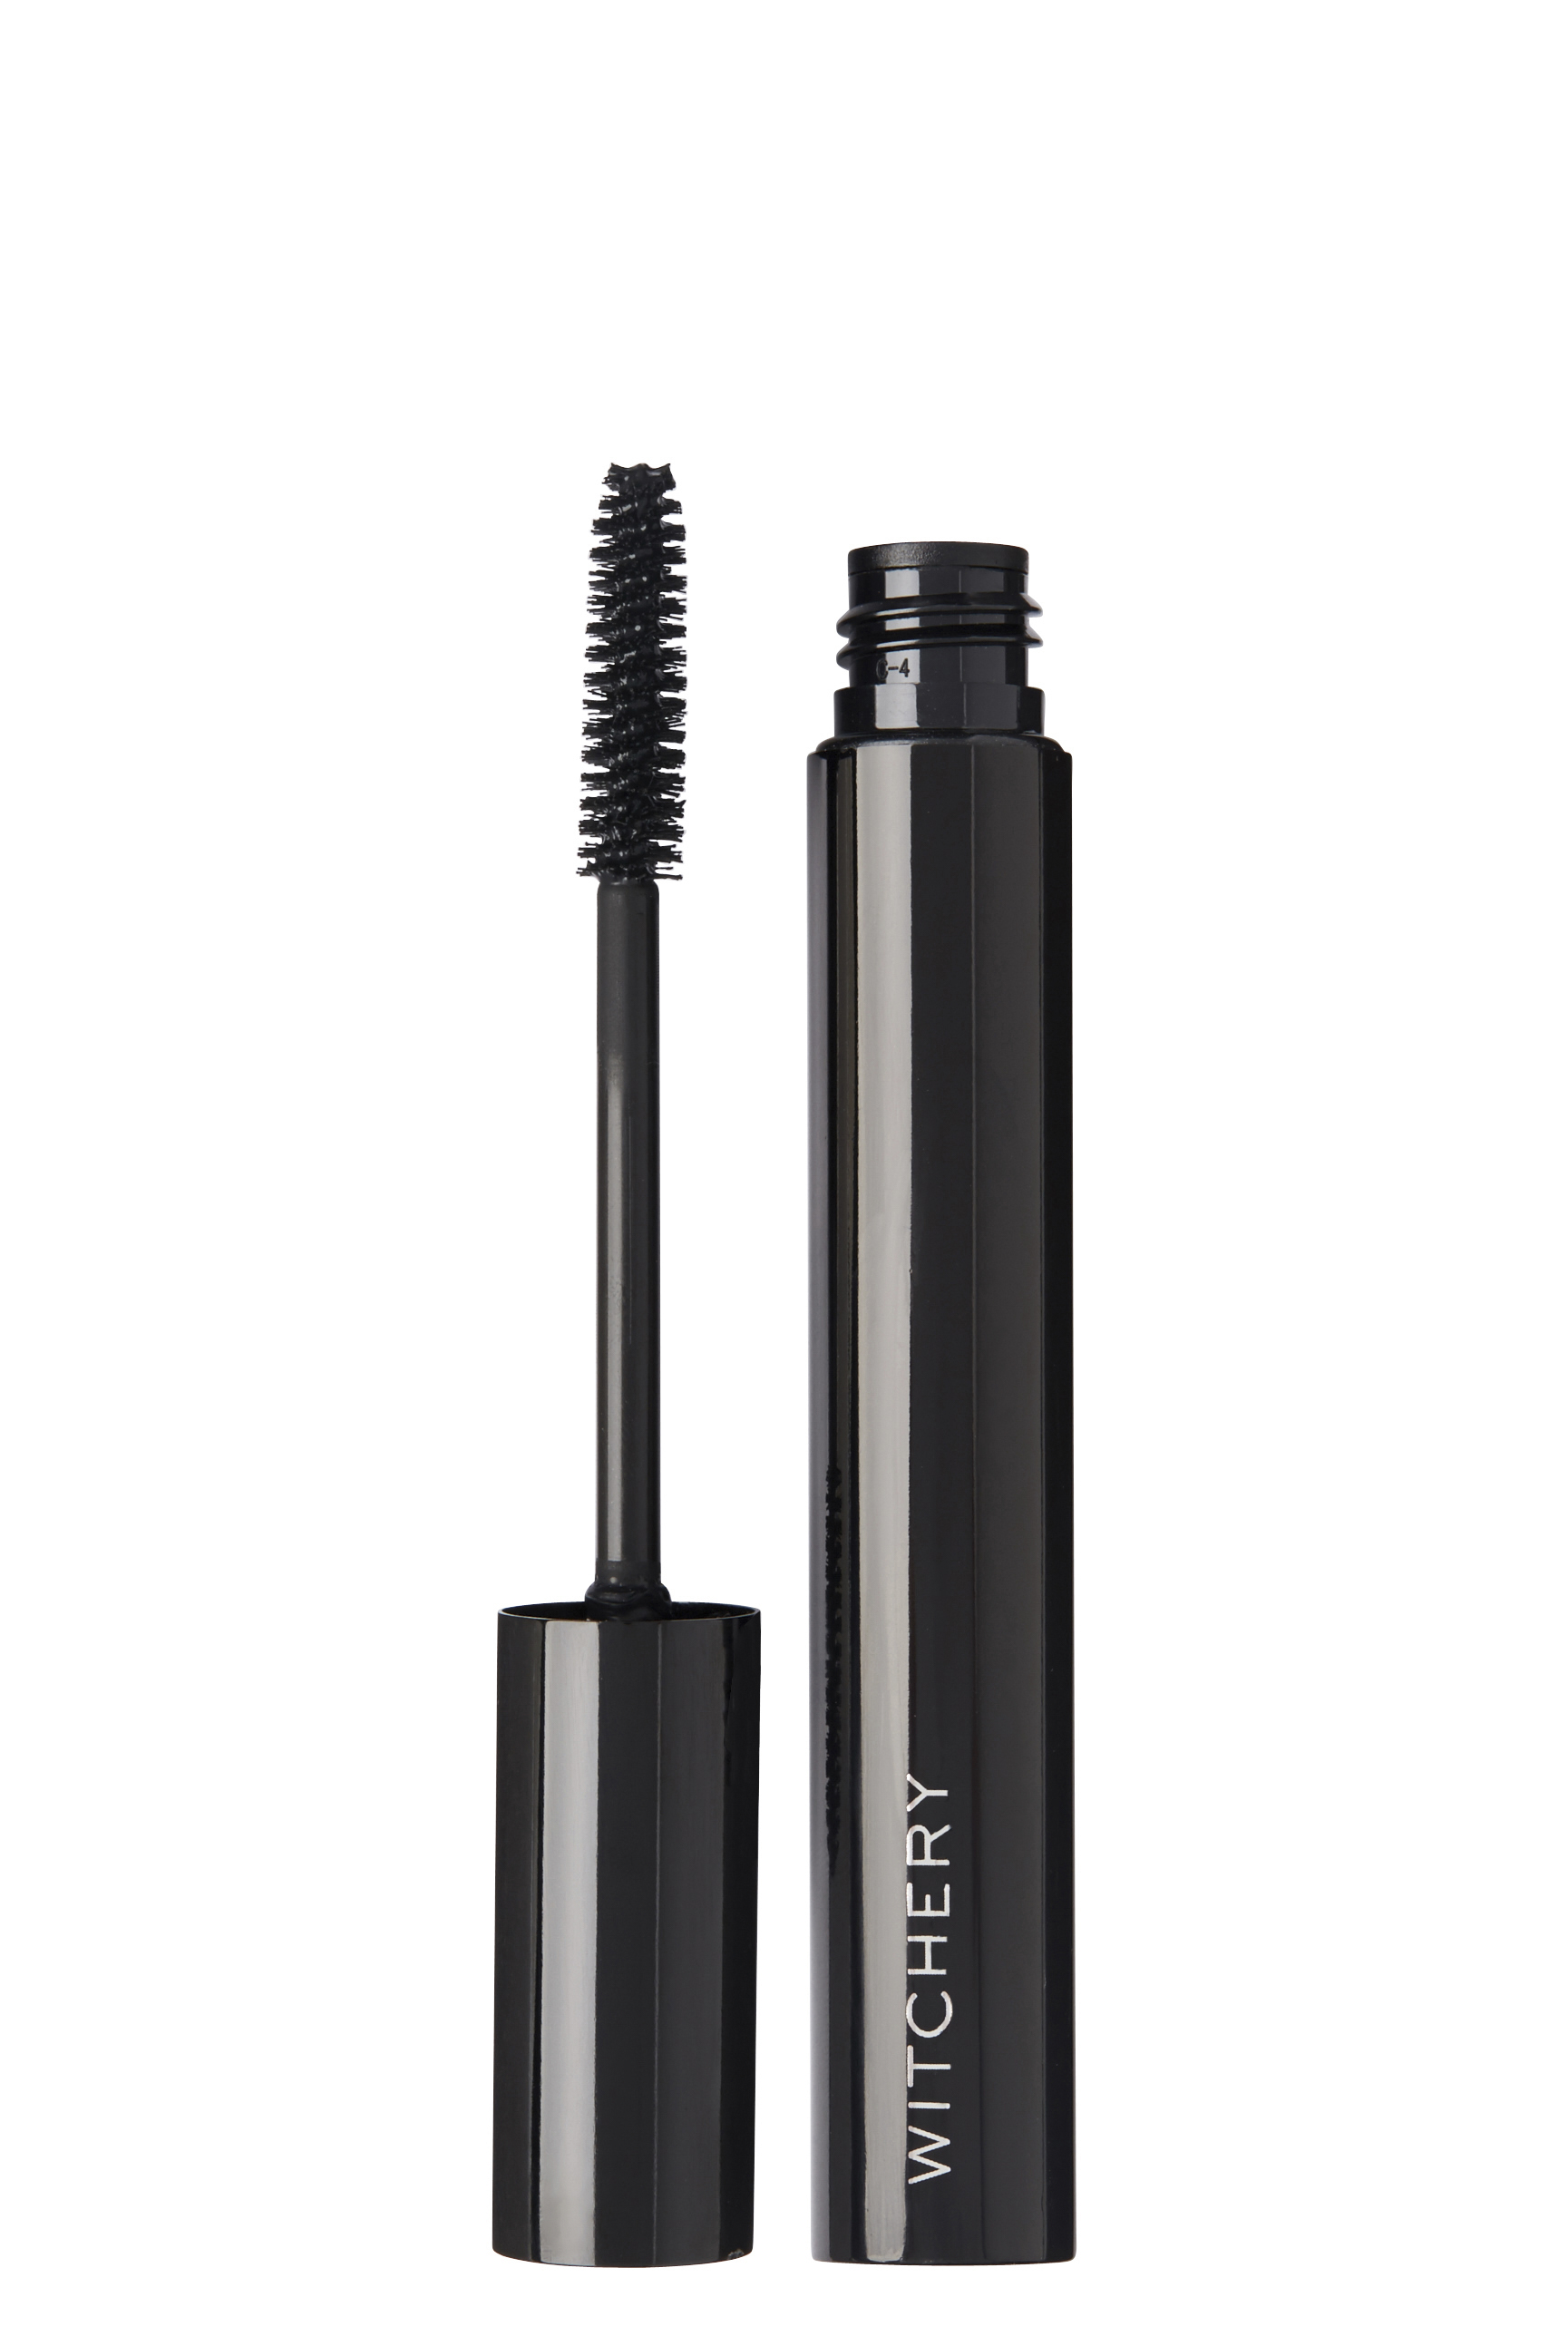 60172146_witcherybeauty-mascara-waterproof21-90